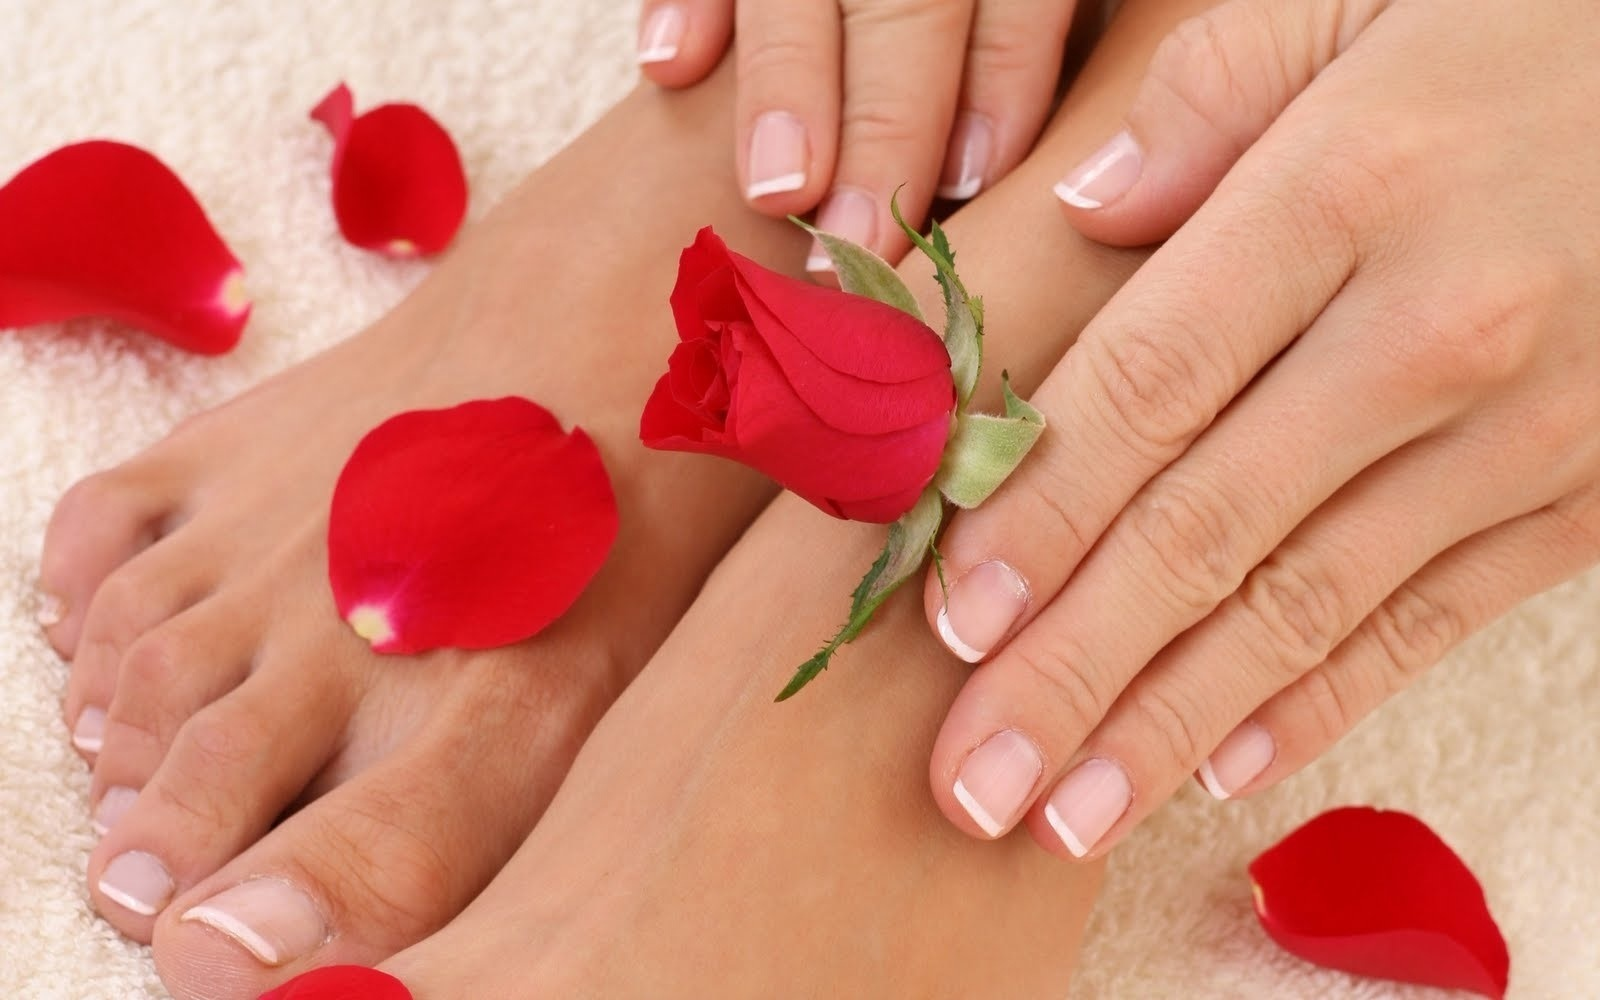 Simple Steps For Manicure And Pedicure At Home | wedneeds